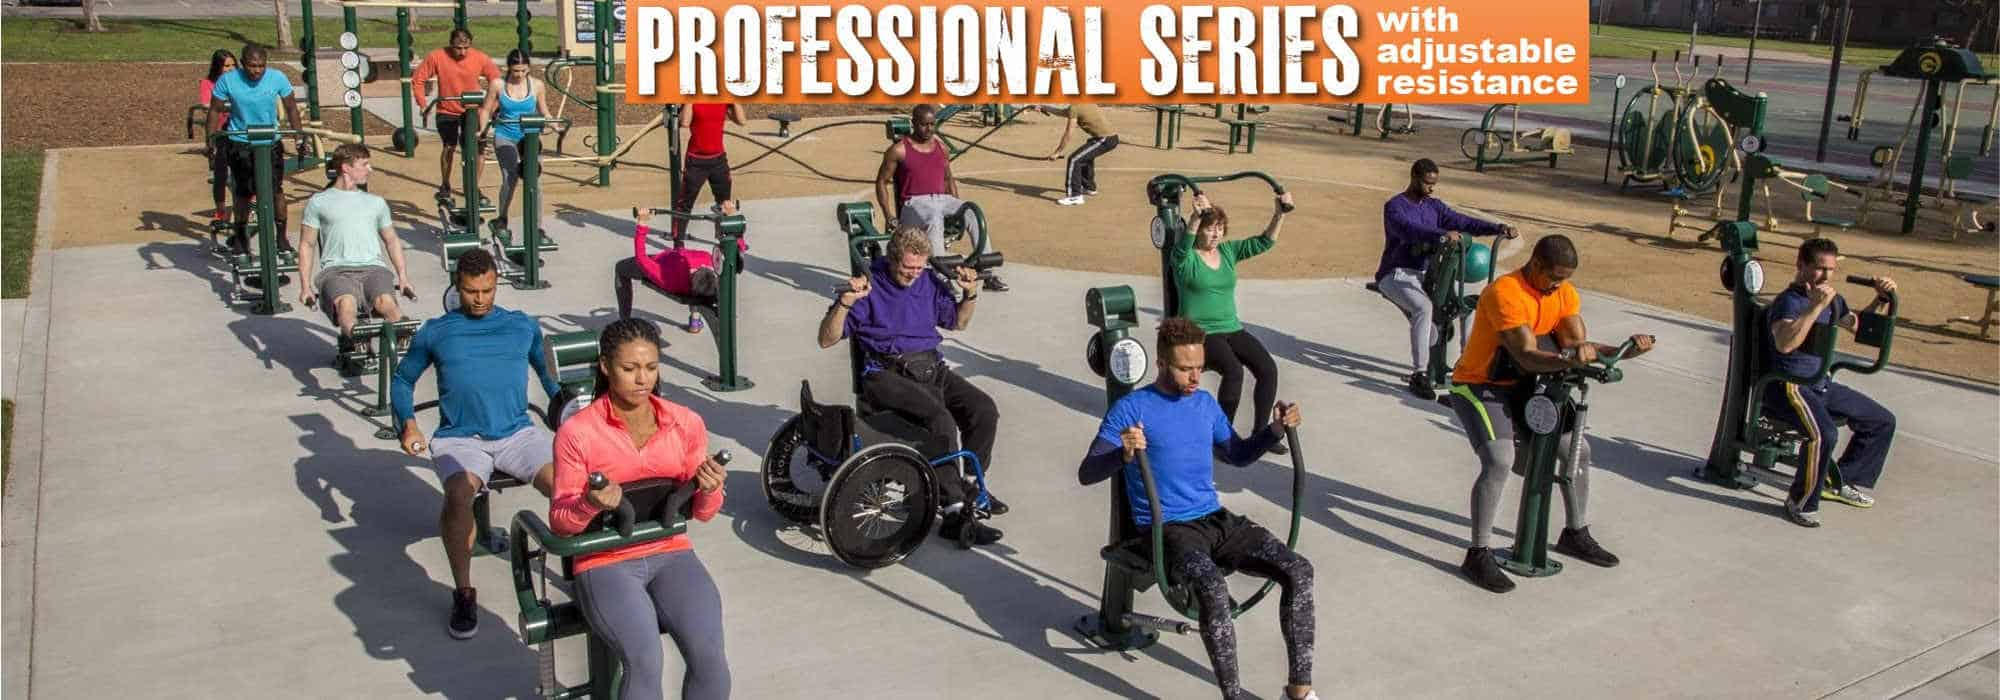 professional series fitness equipment